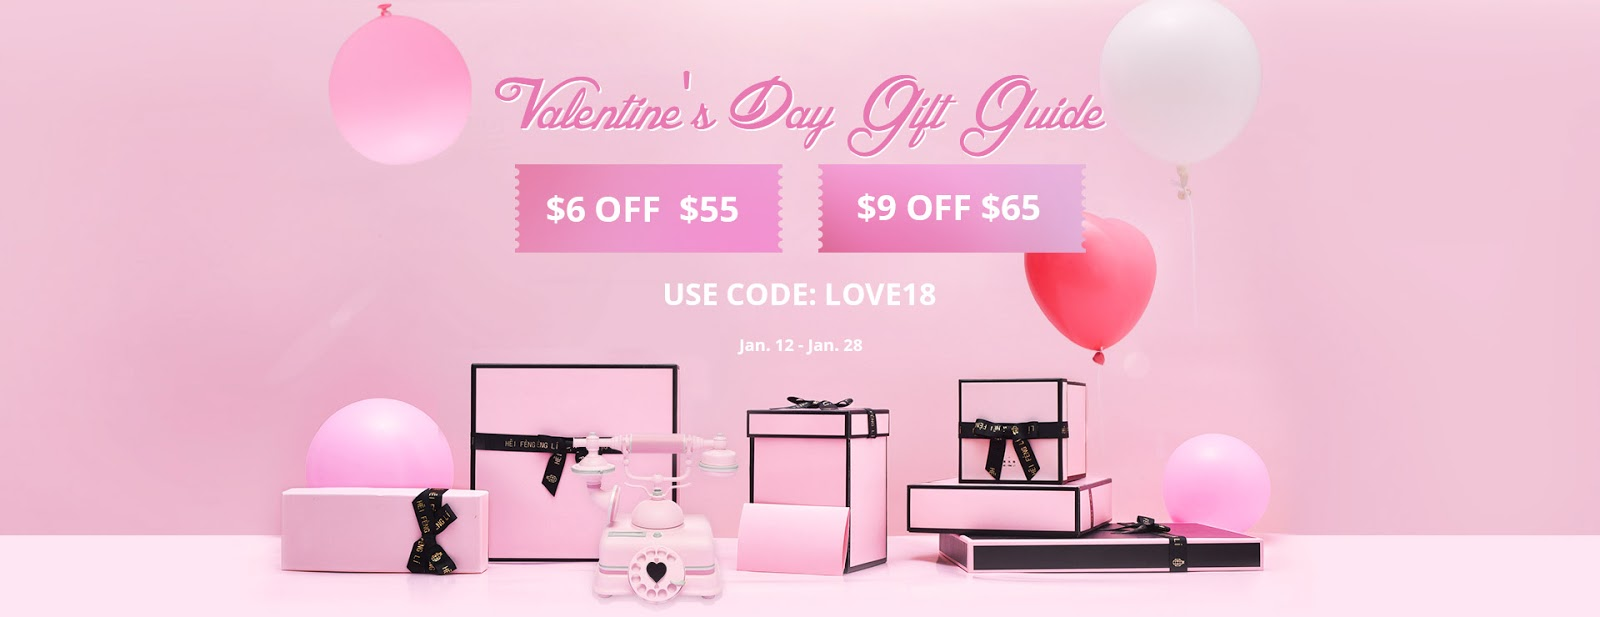 VALENITNE'S DAY 2018 ON ZAFUL